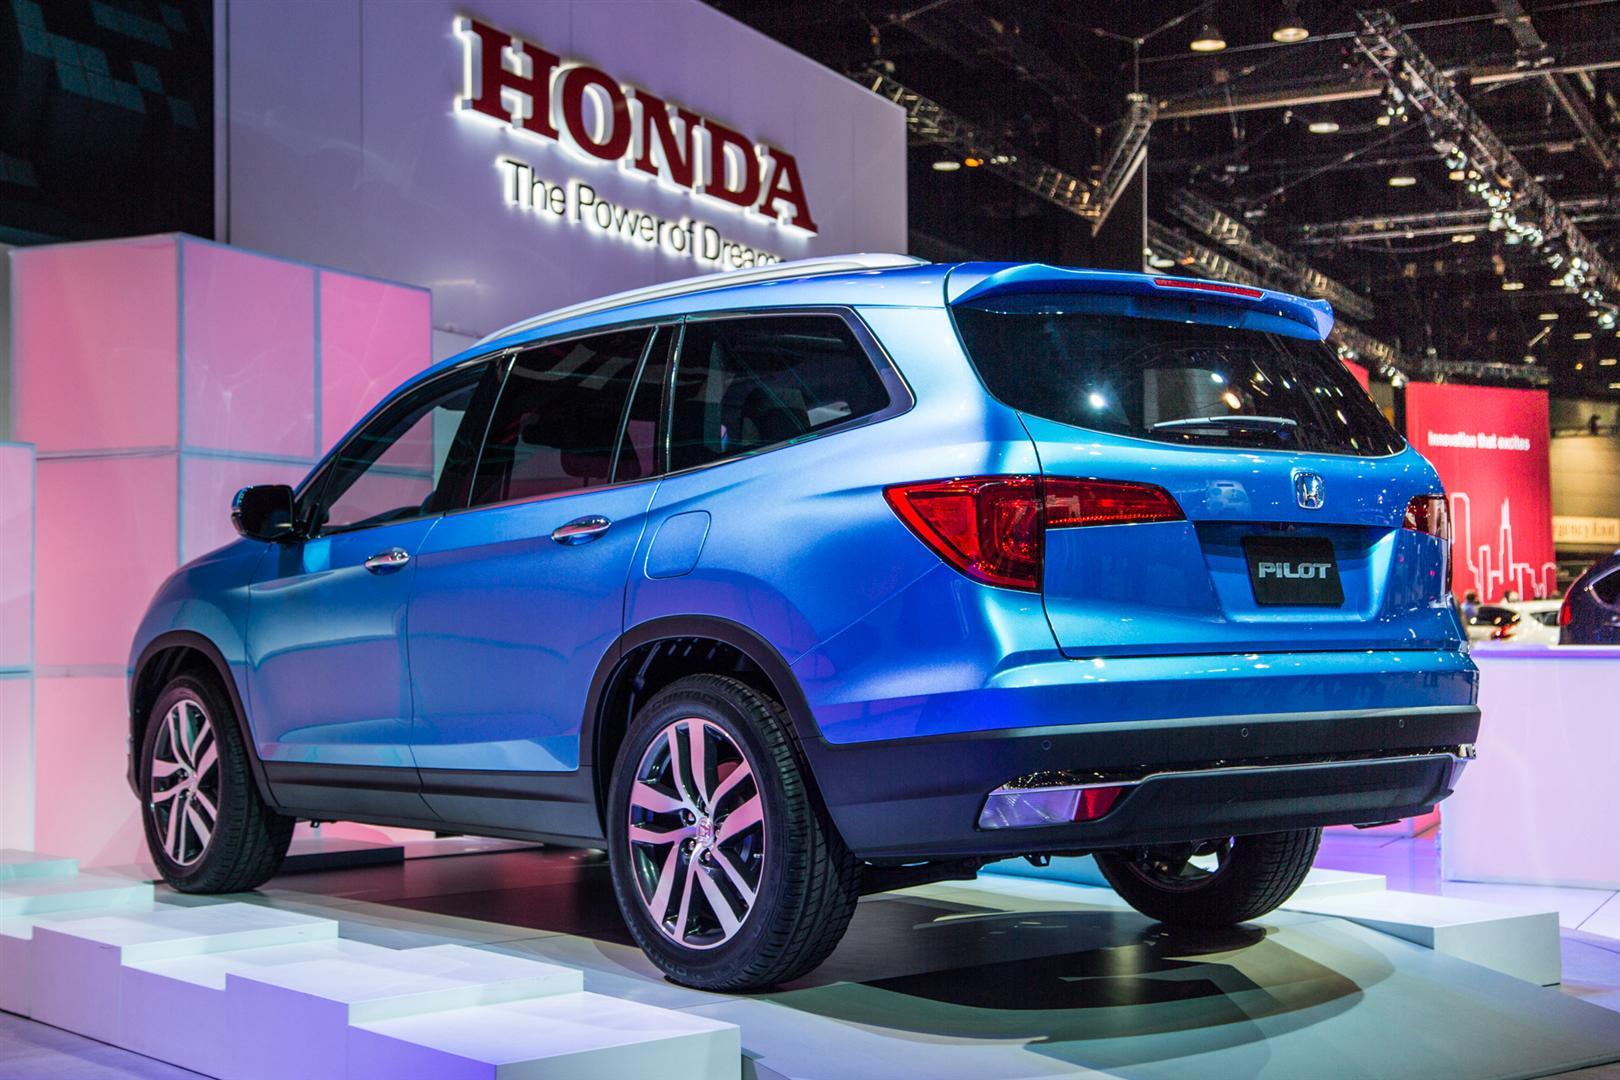 2020 Honda Pilot Release Date and Price